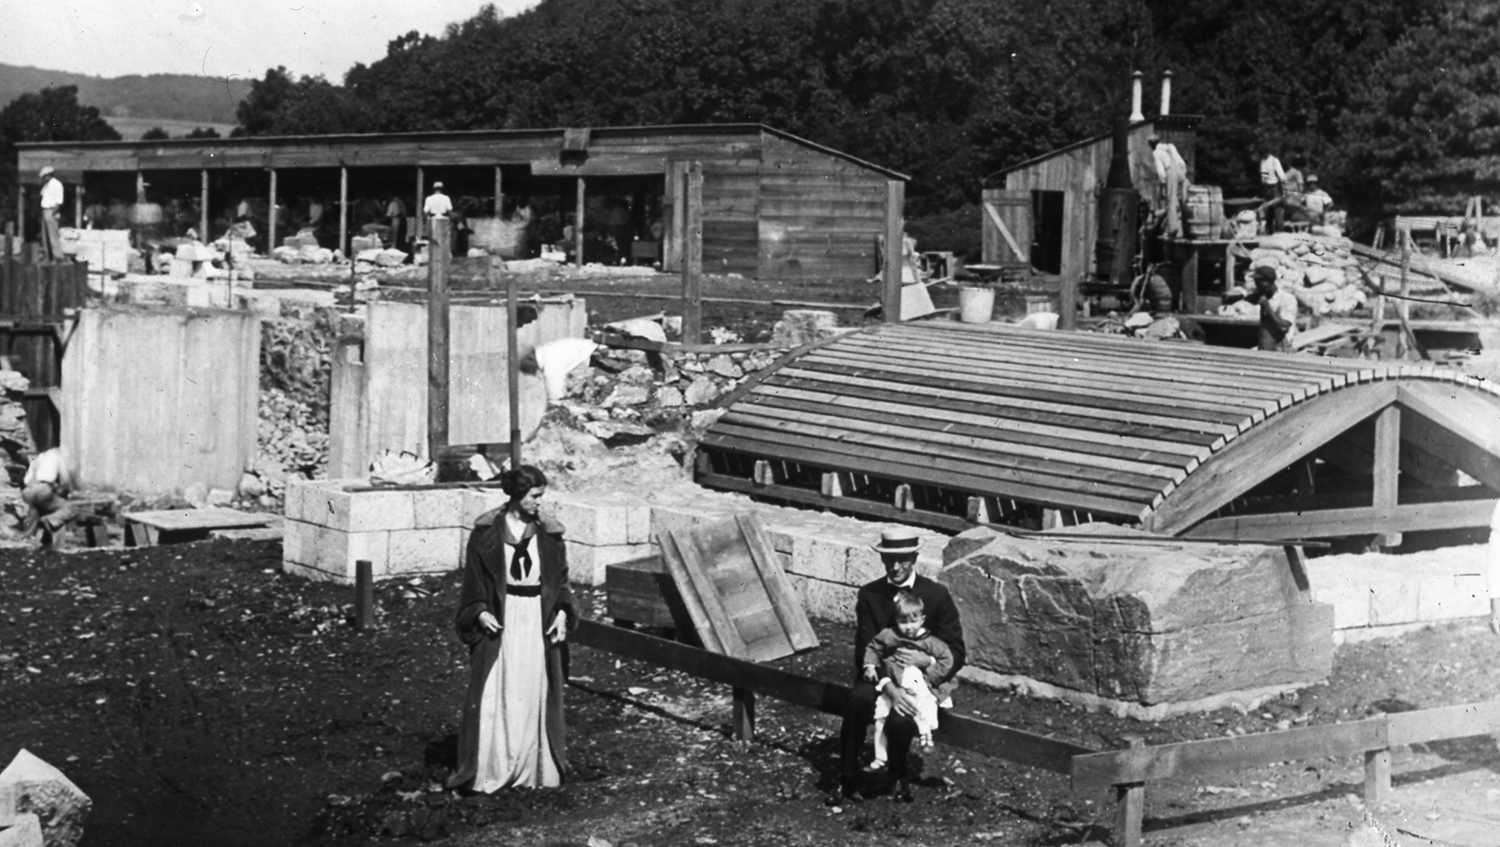 Figure 5: Mildred and Raymond Pitcairn visit the cornerstone with their son Nathan during the summer of 1914. The curved wooden structure in the photograph was a temporary frame used in the construction of an arched stone ceiling under the Cathedral's sanctuary.